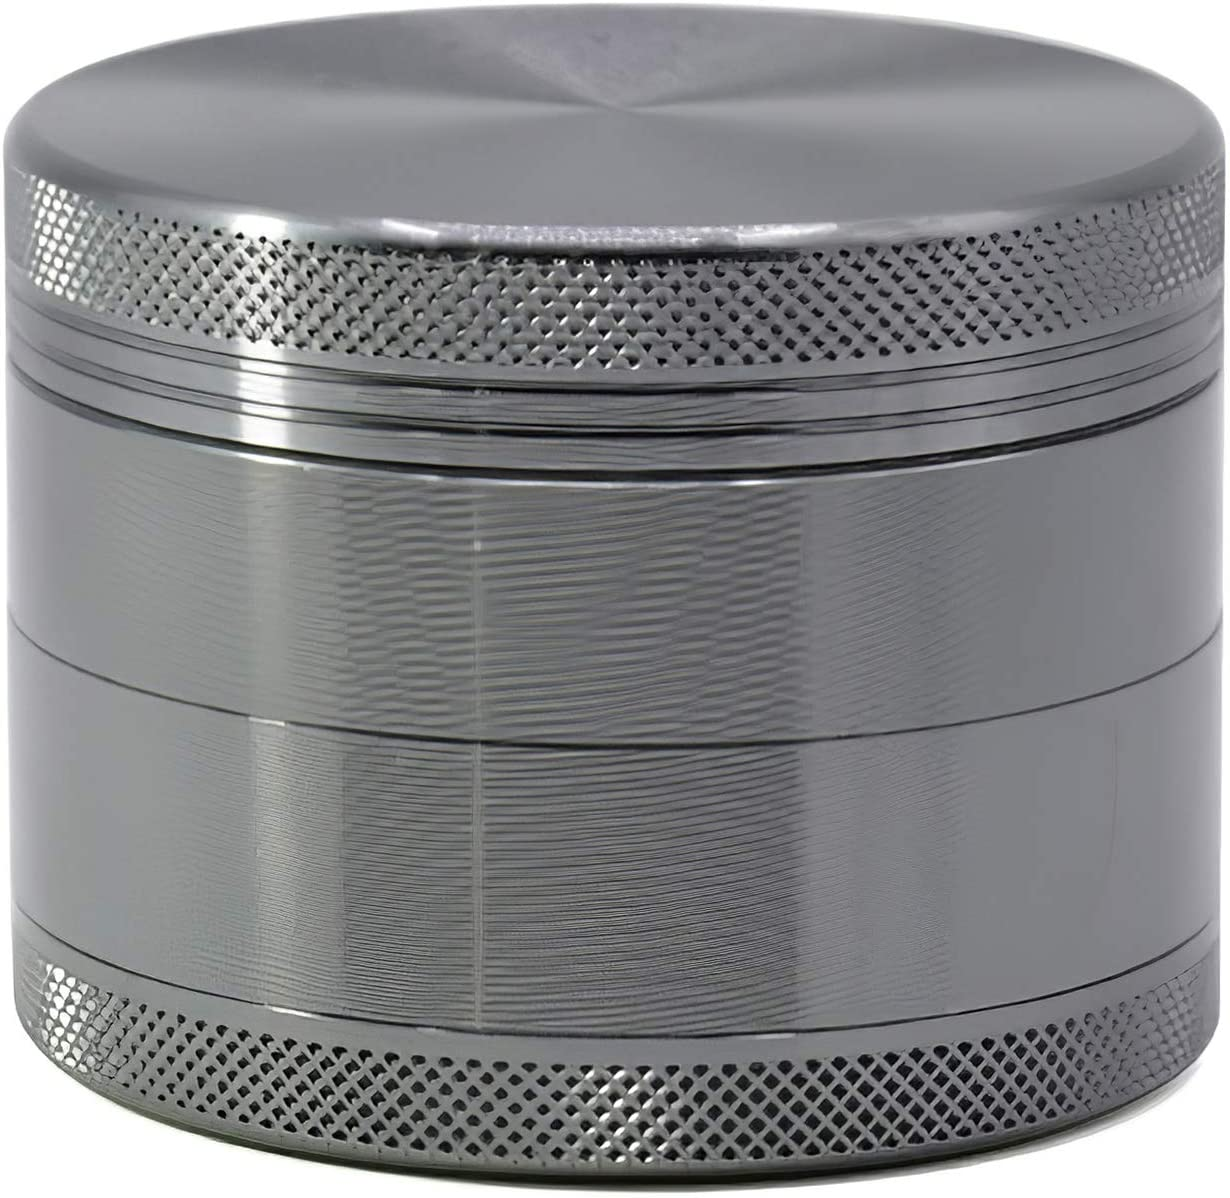 Green ,Manual Grinder with Removable Screen Easy to Clean SK Depot ...